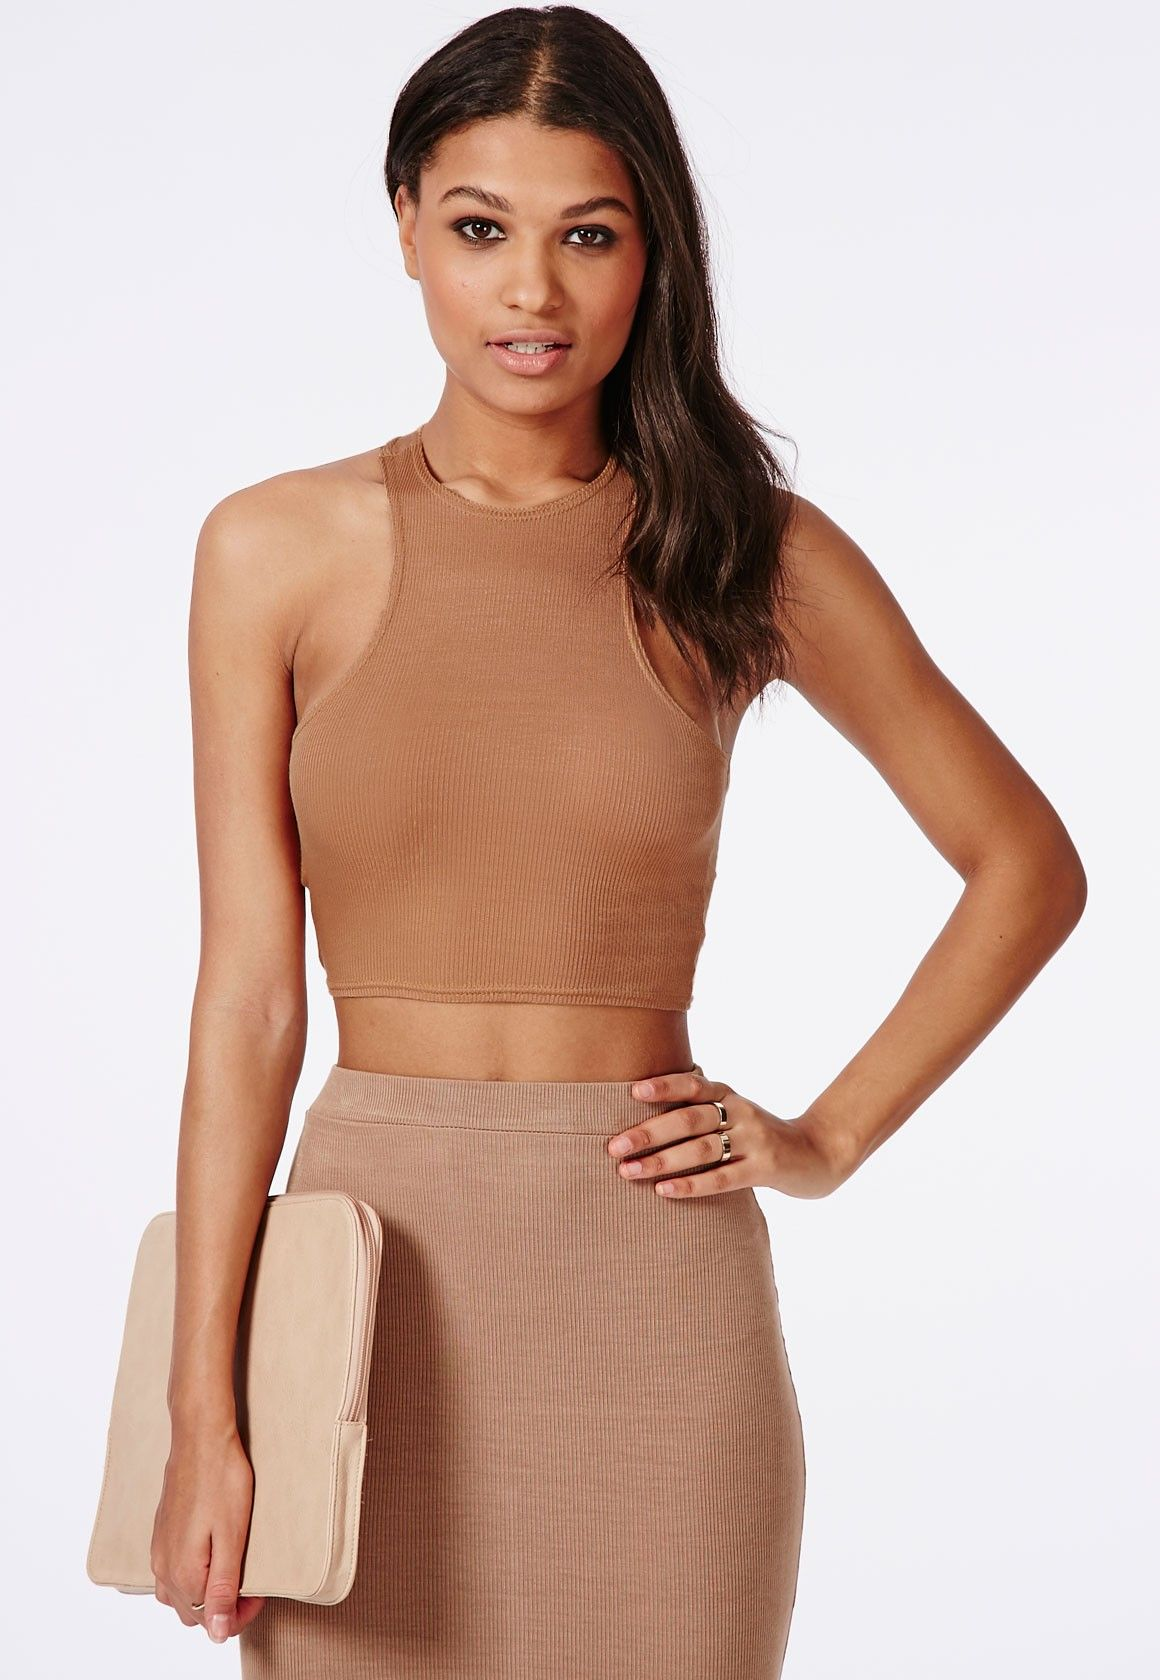 d3d701107d9a2a Missguided - Racer Back Ribbed Crop Top Camel   _Warobe_   Ribbed ...